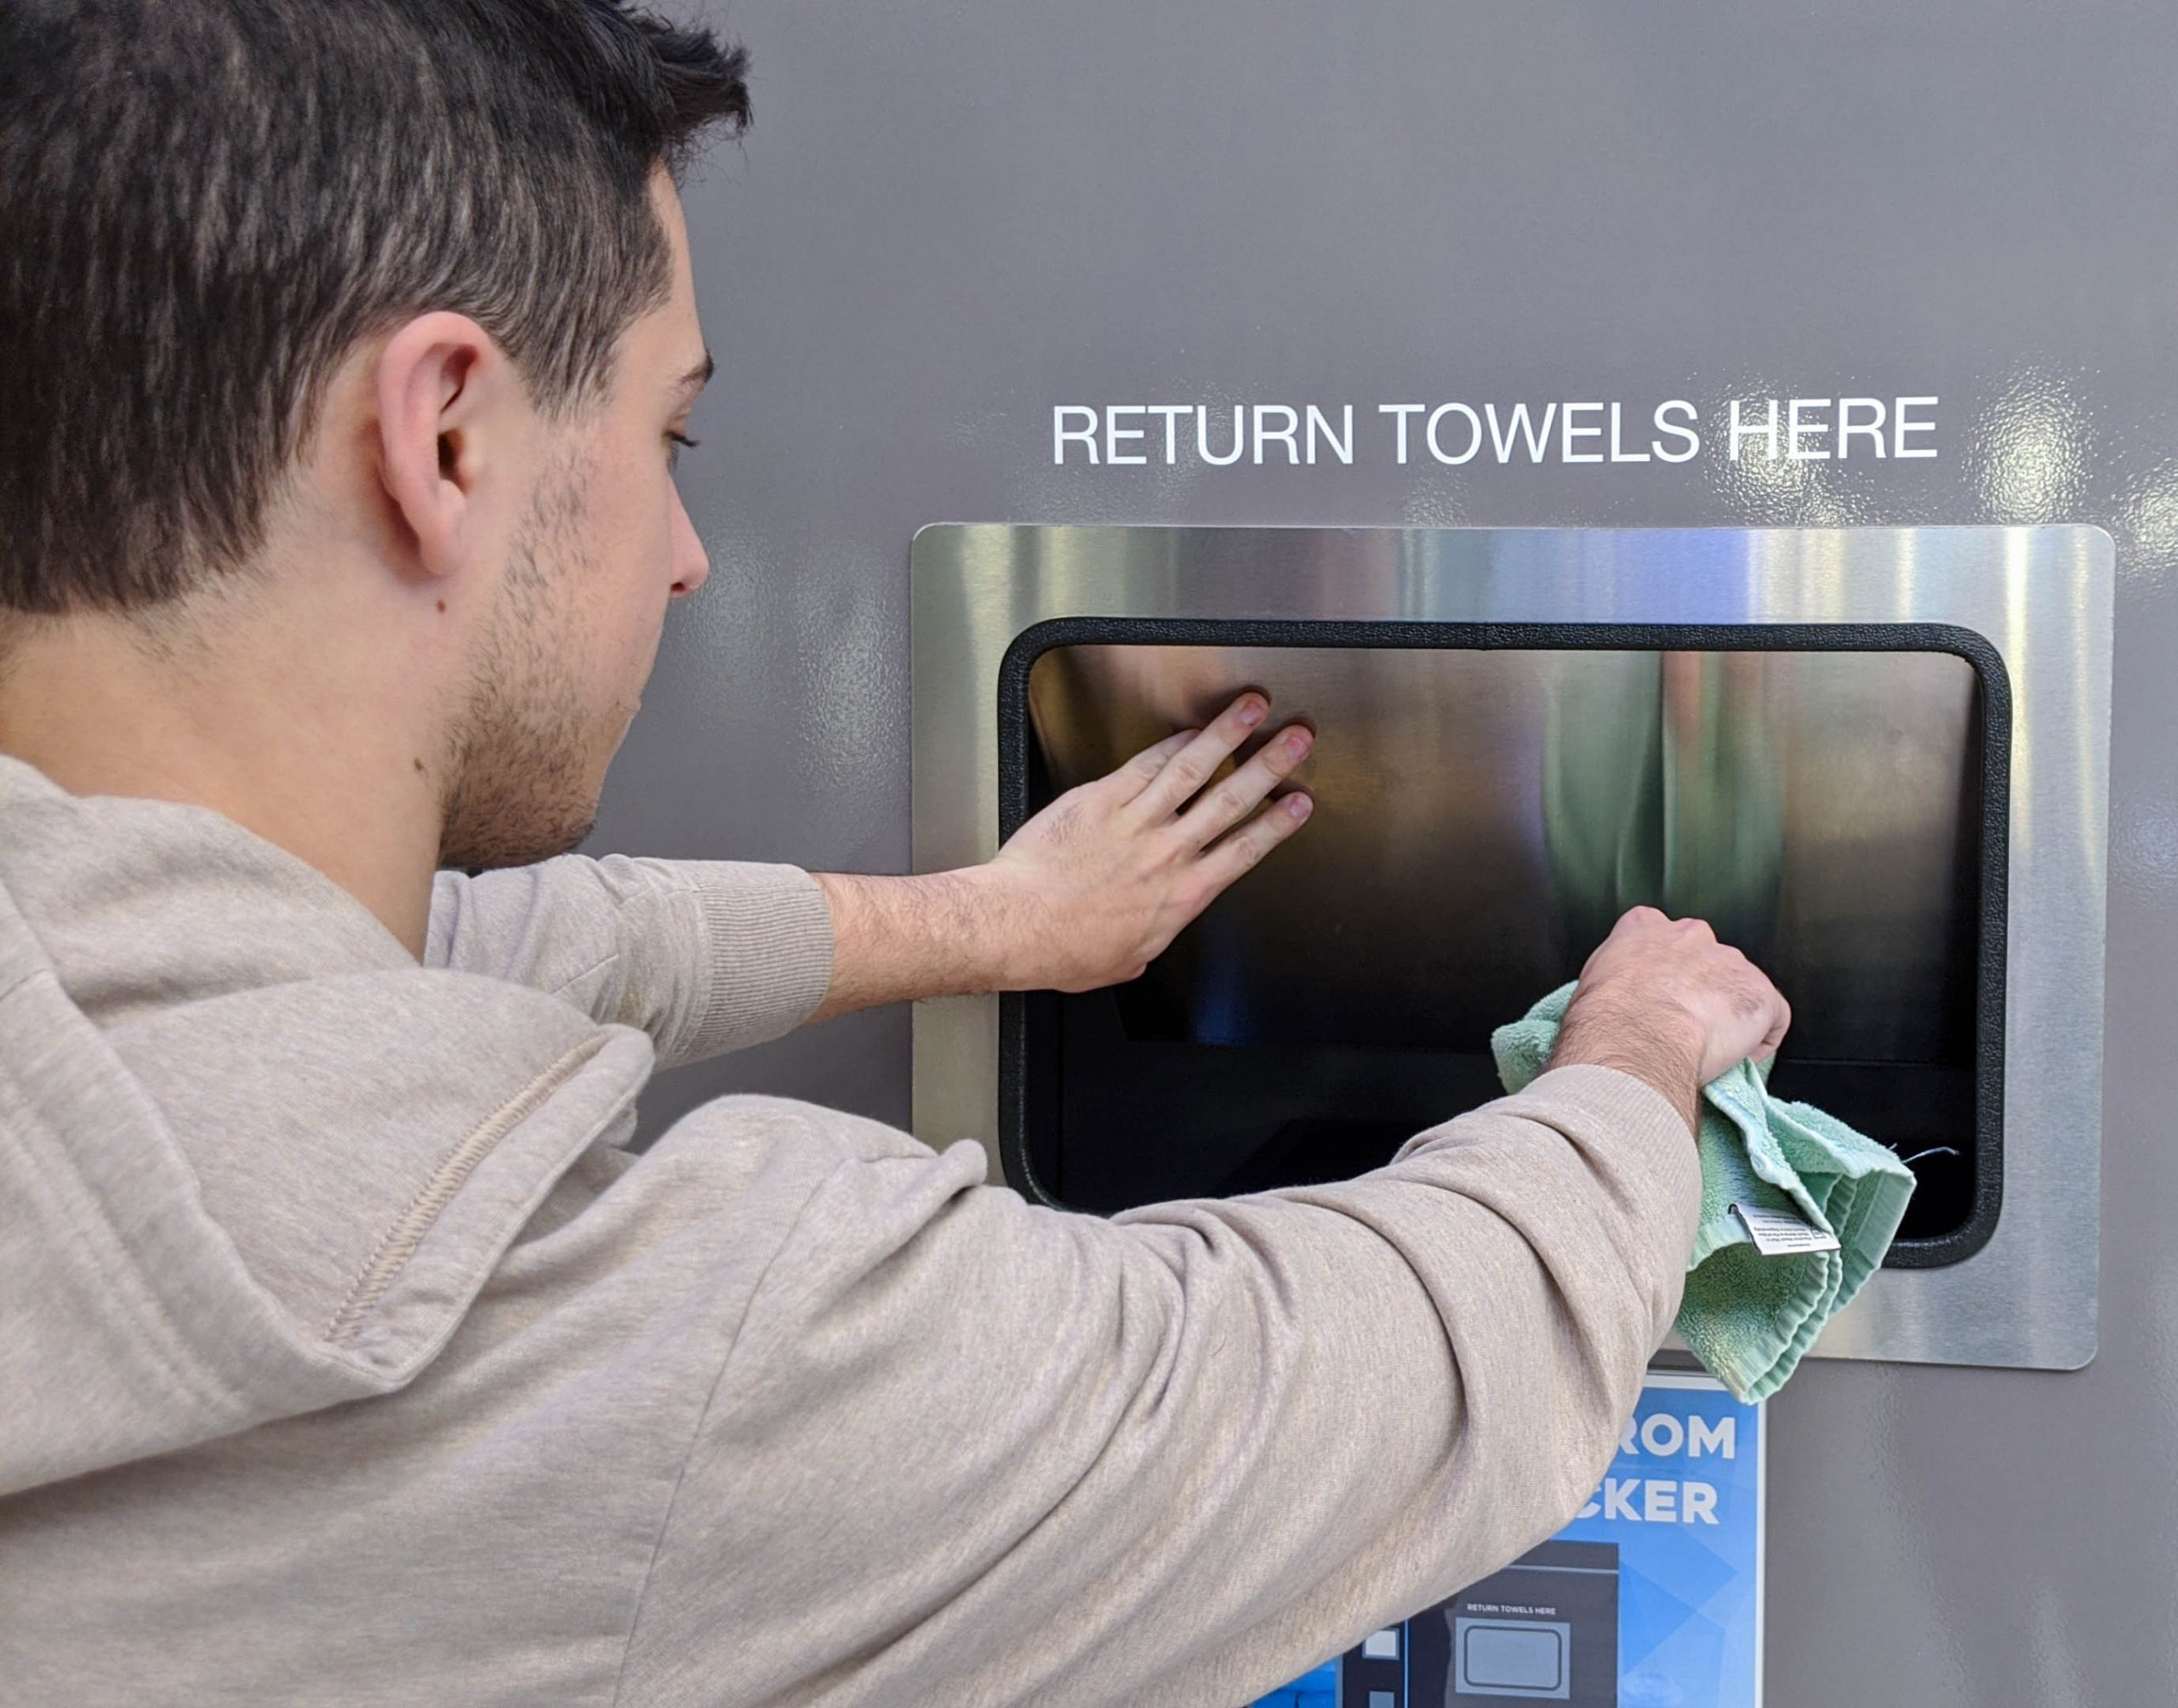 Returning towel to Towel Tracker Kiosk